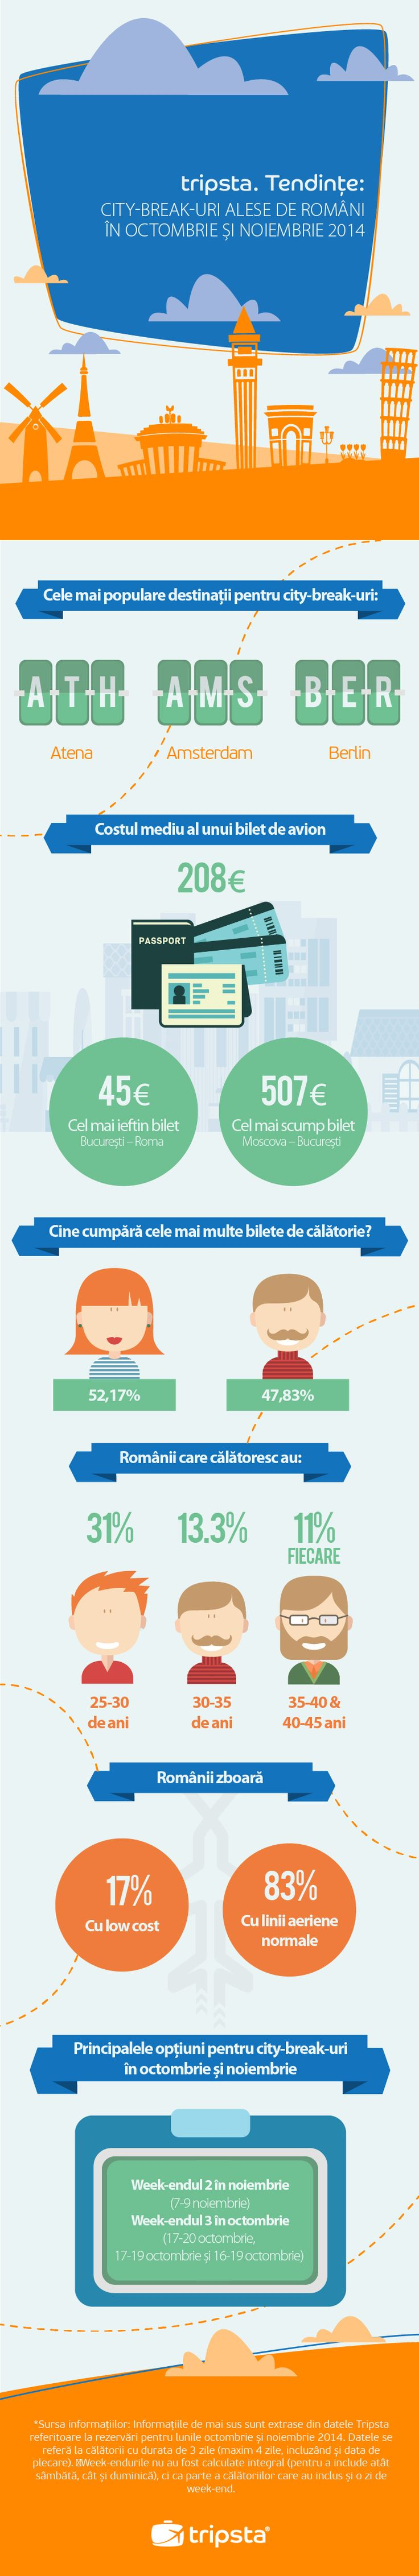 City Break Trends for Romanians by Tripsta.ro #infographic #tripsta #trends #citybreaks